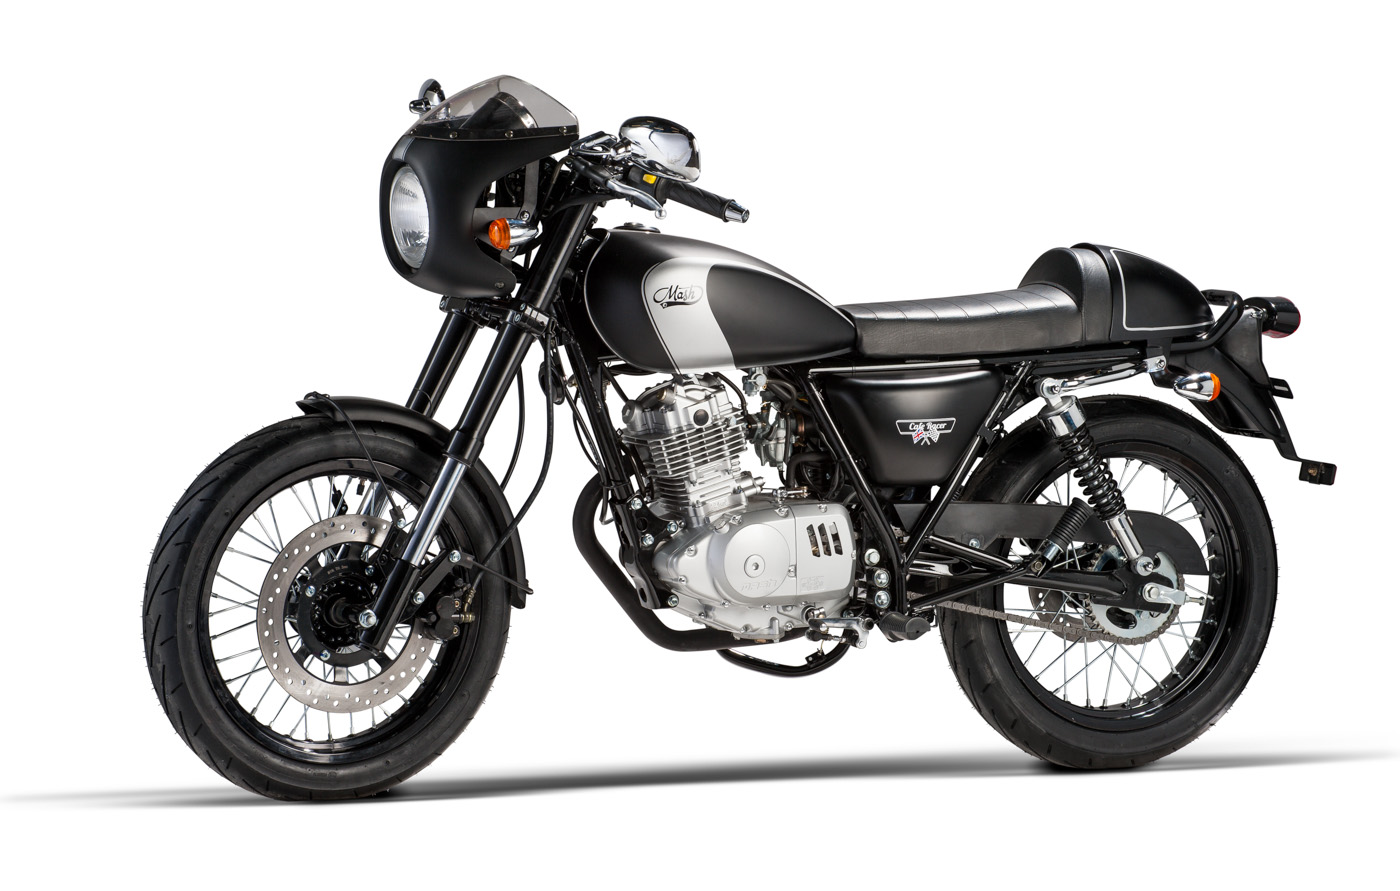 Fiche Technique Mash Cafe Racer